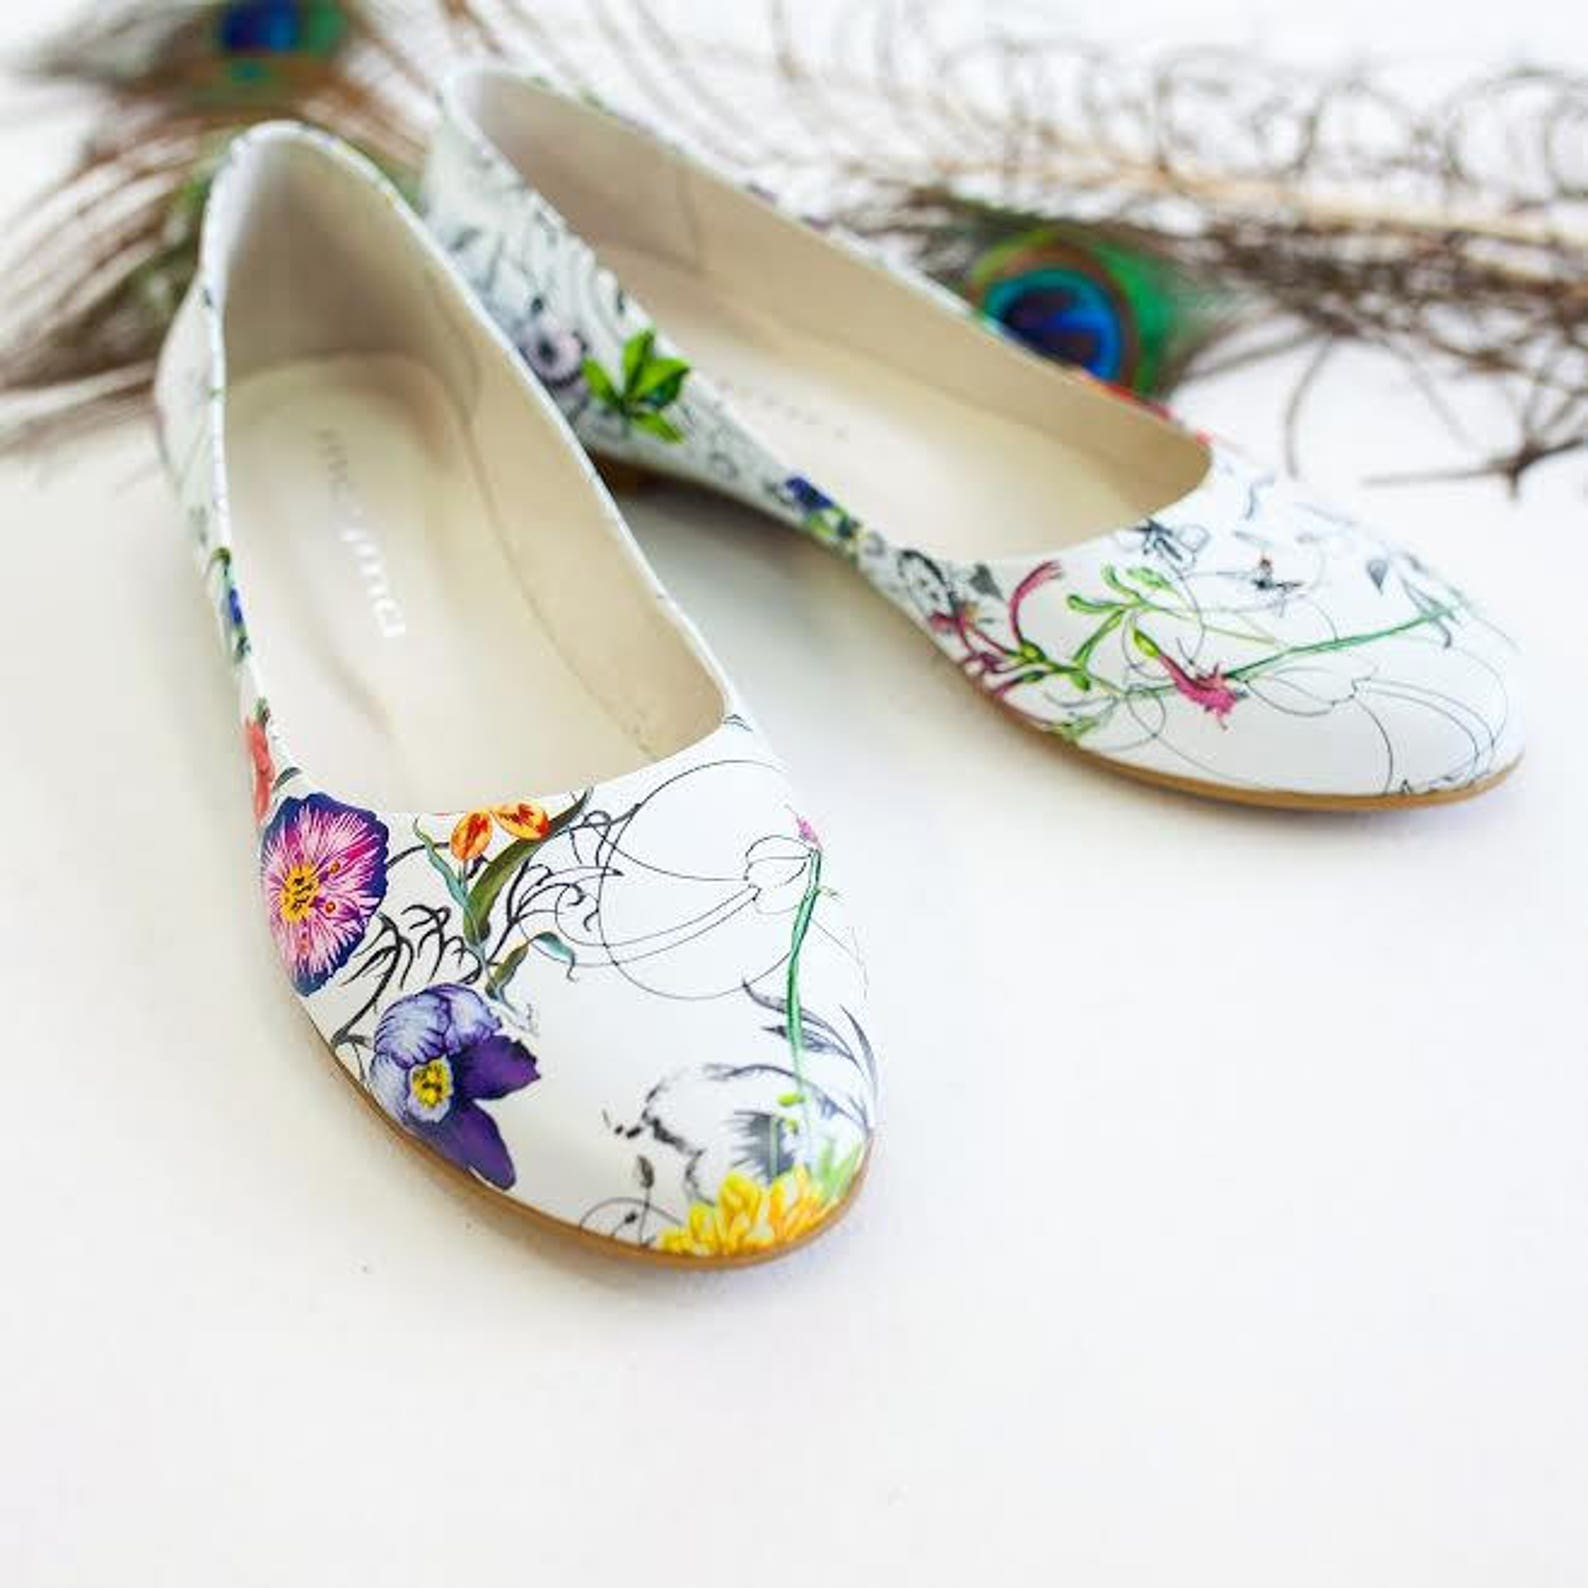 mamda shoes ballet women's flat shoes white floral